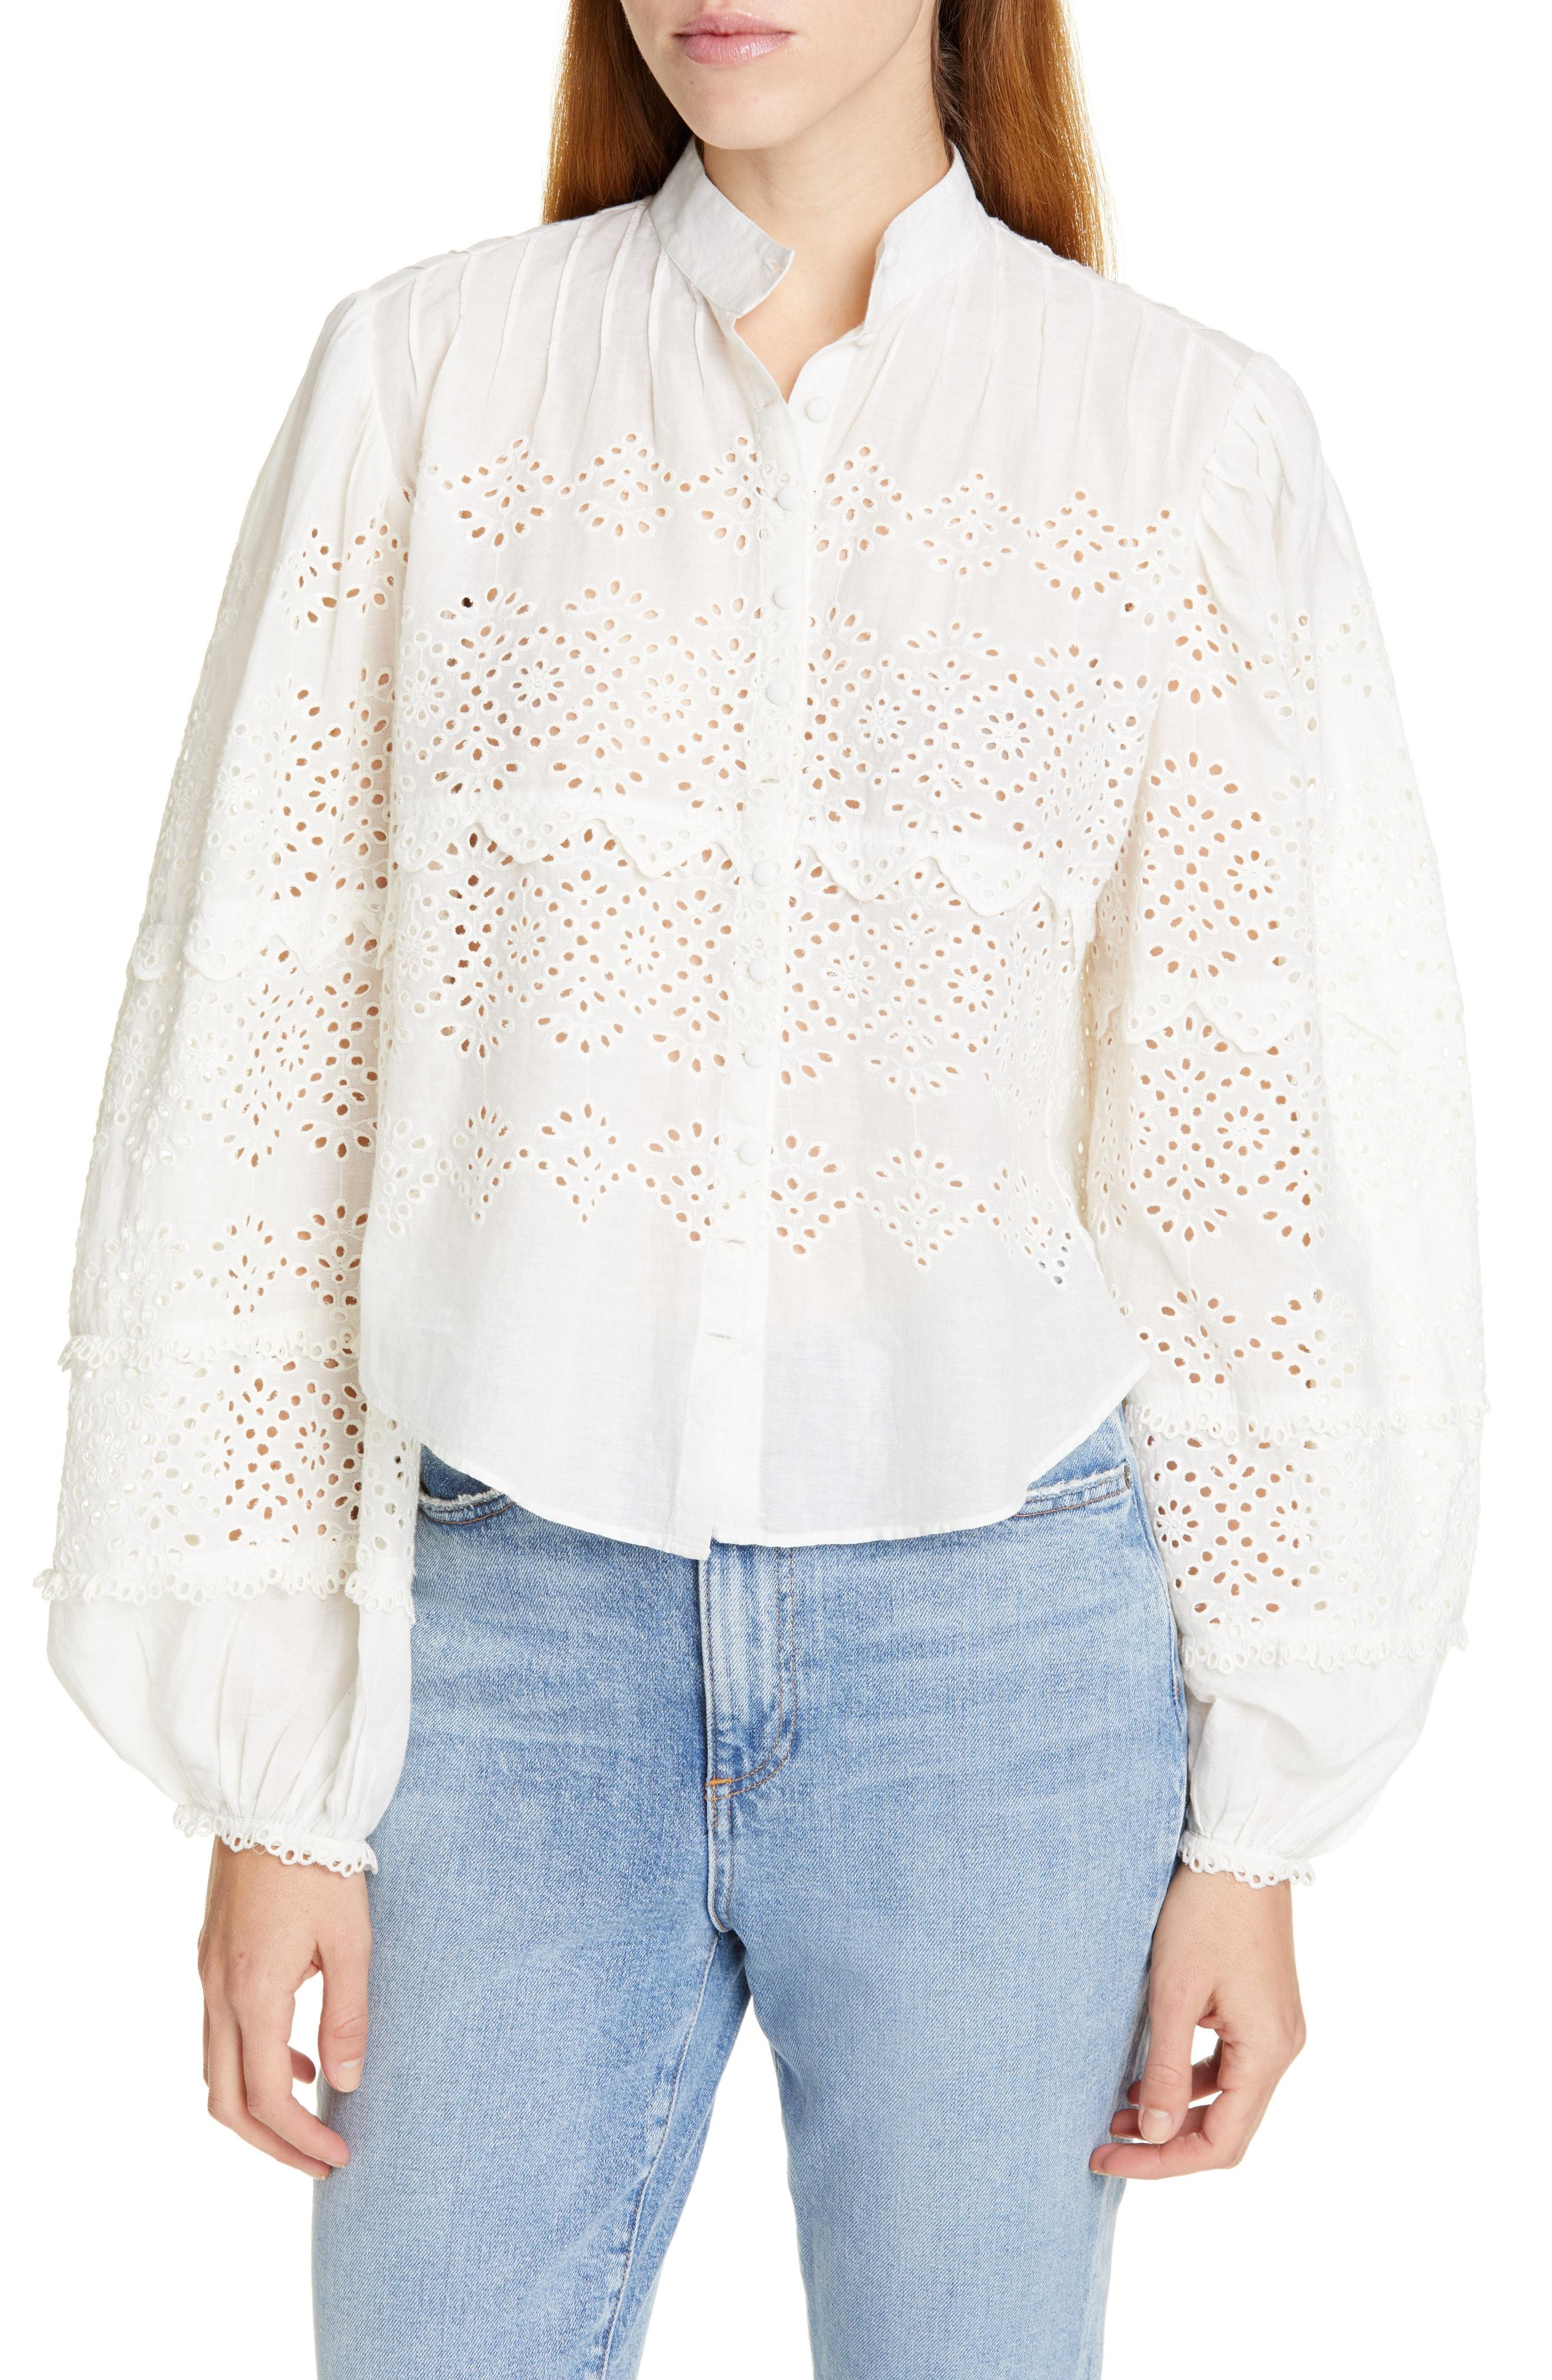 4c2b8c2b5ee8b LoveShackFancy - White Lola Eyelet Top - Lyst. View fullscreen